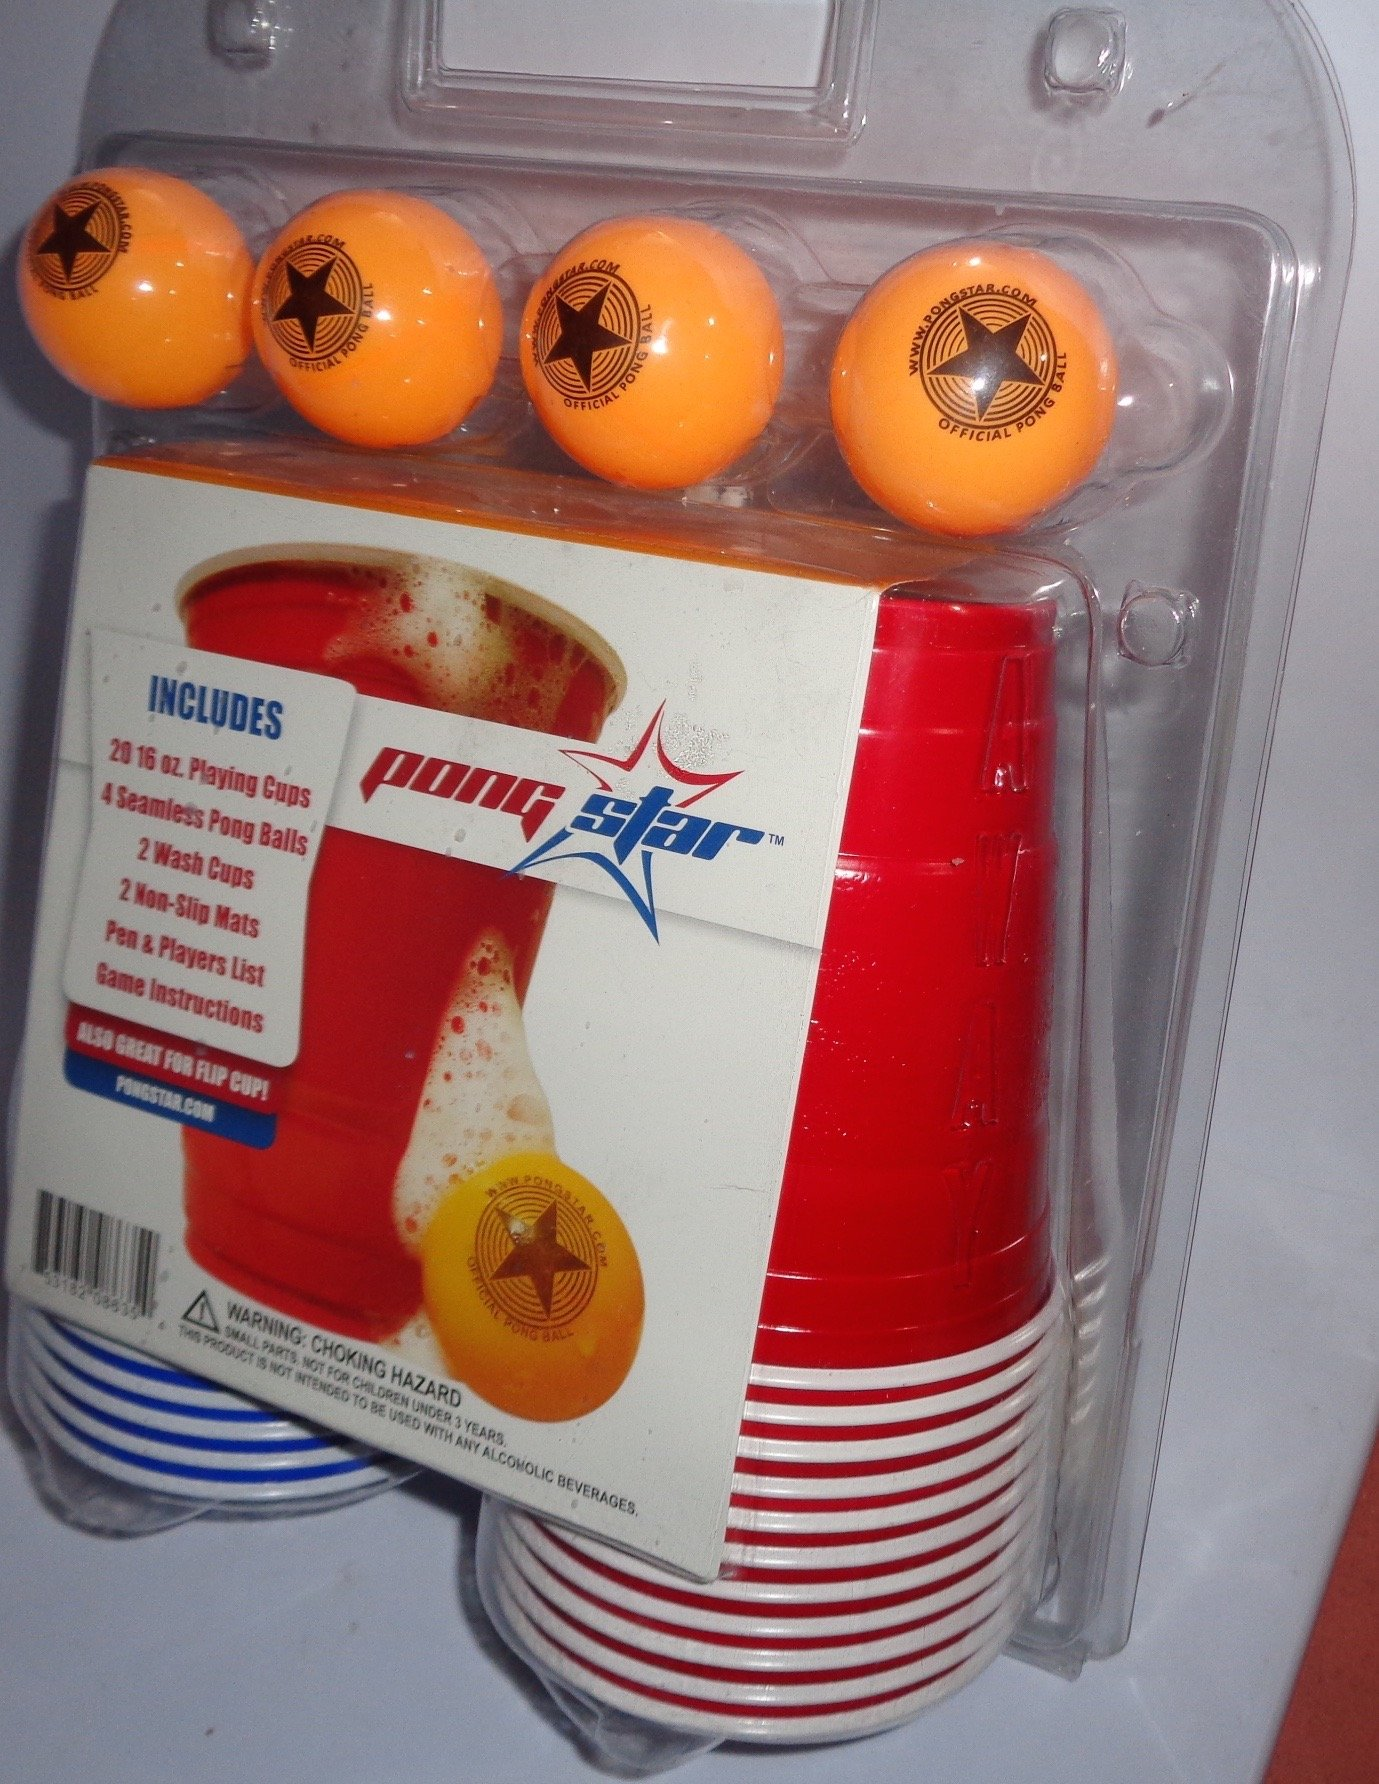 Pong Star Beer Cup Kit